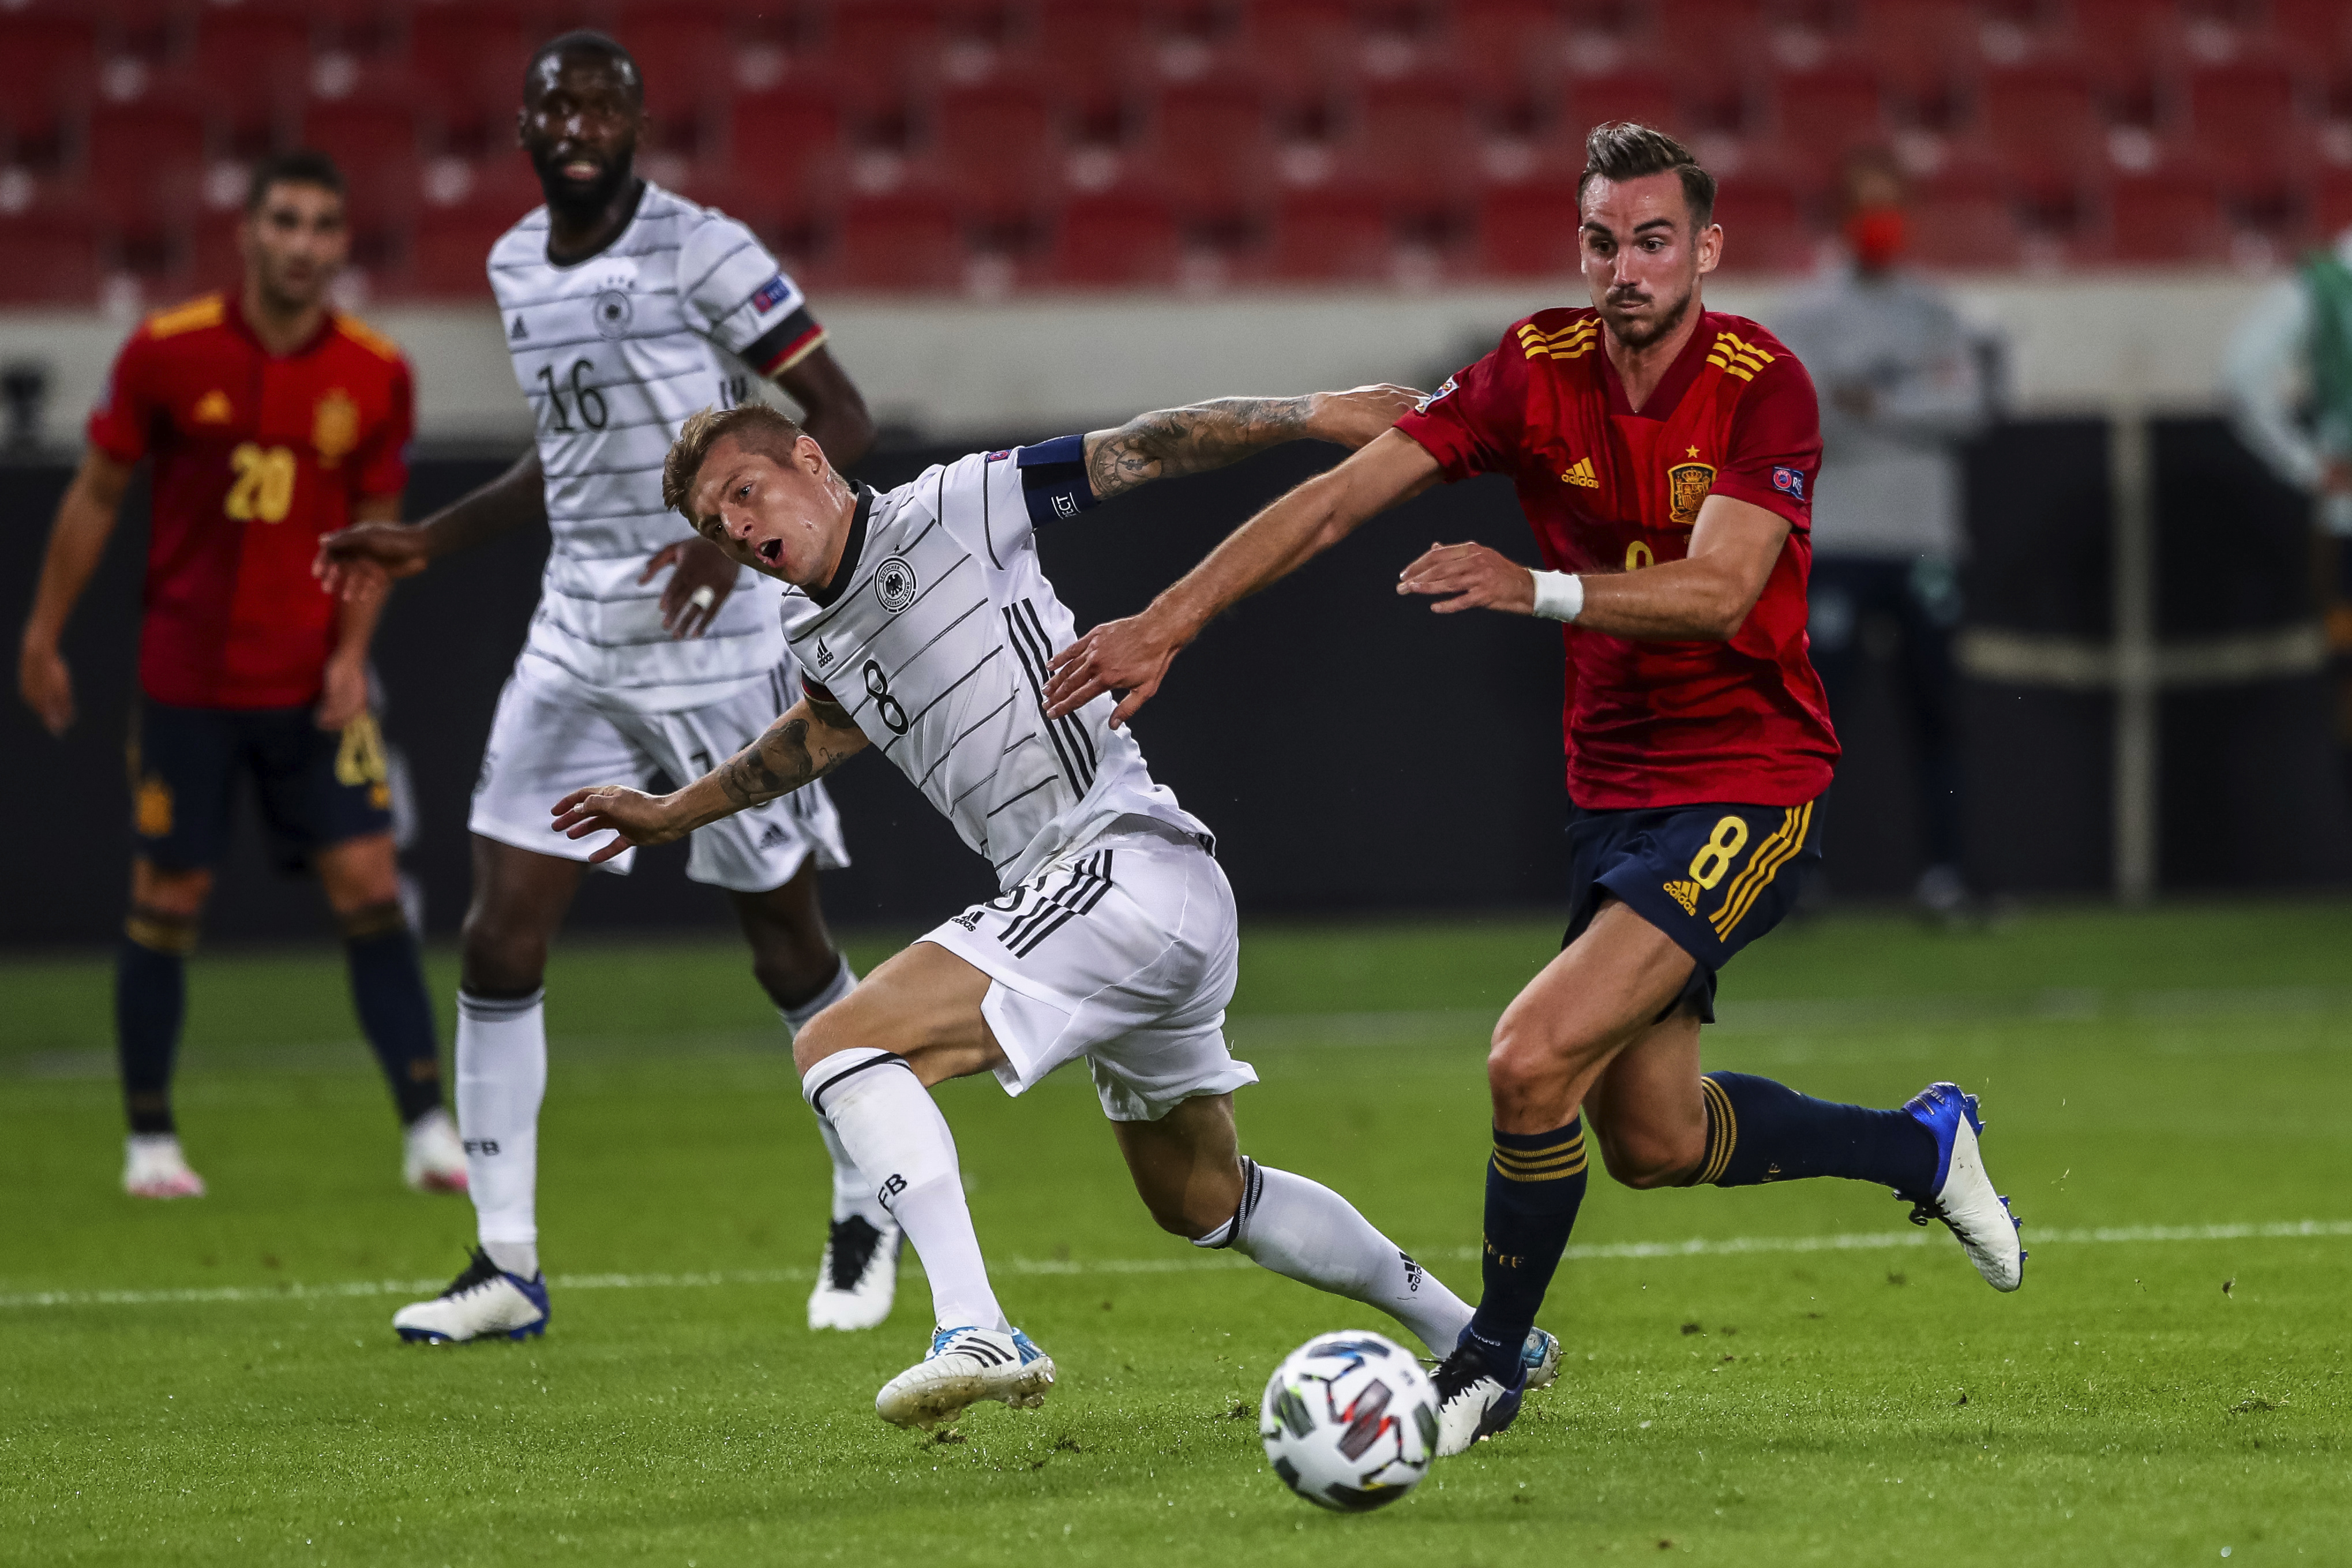 Uefa Nations League 2020 Tv Schedule 9 6 20 Watch Germany Vs Spain Russia Vs Serbia More Online Live Streams Times Channel Nj Com